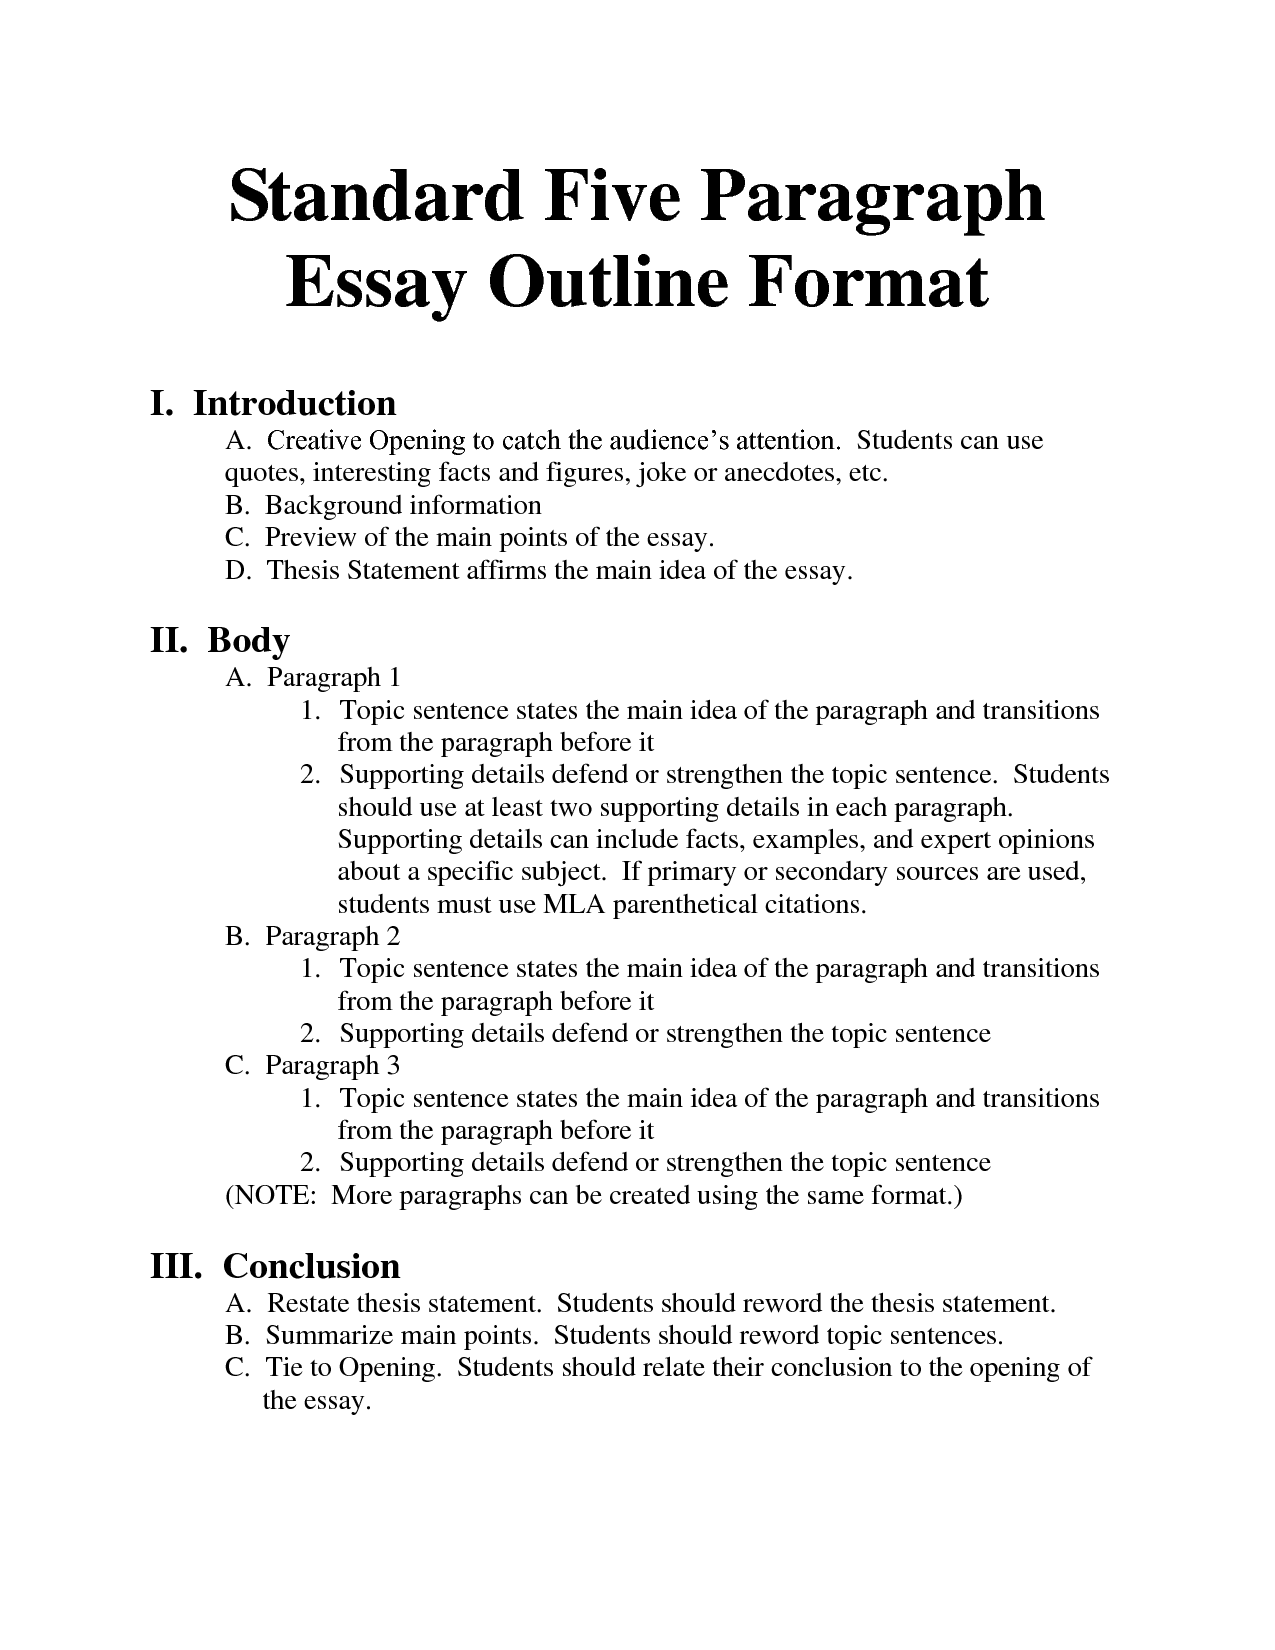 How to Make an Essay Outline: Content Plan